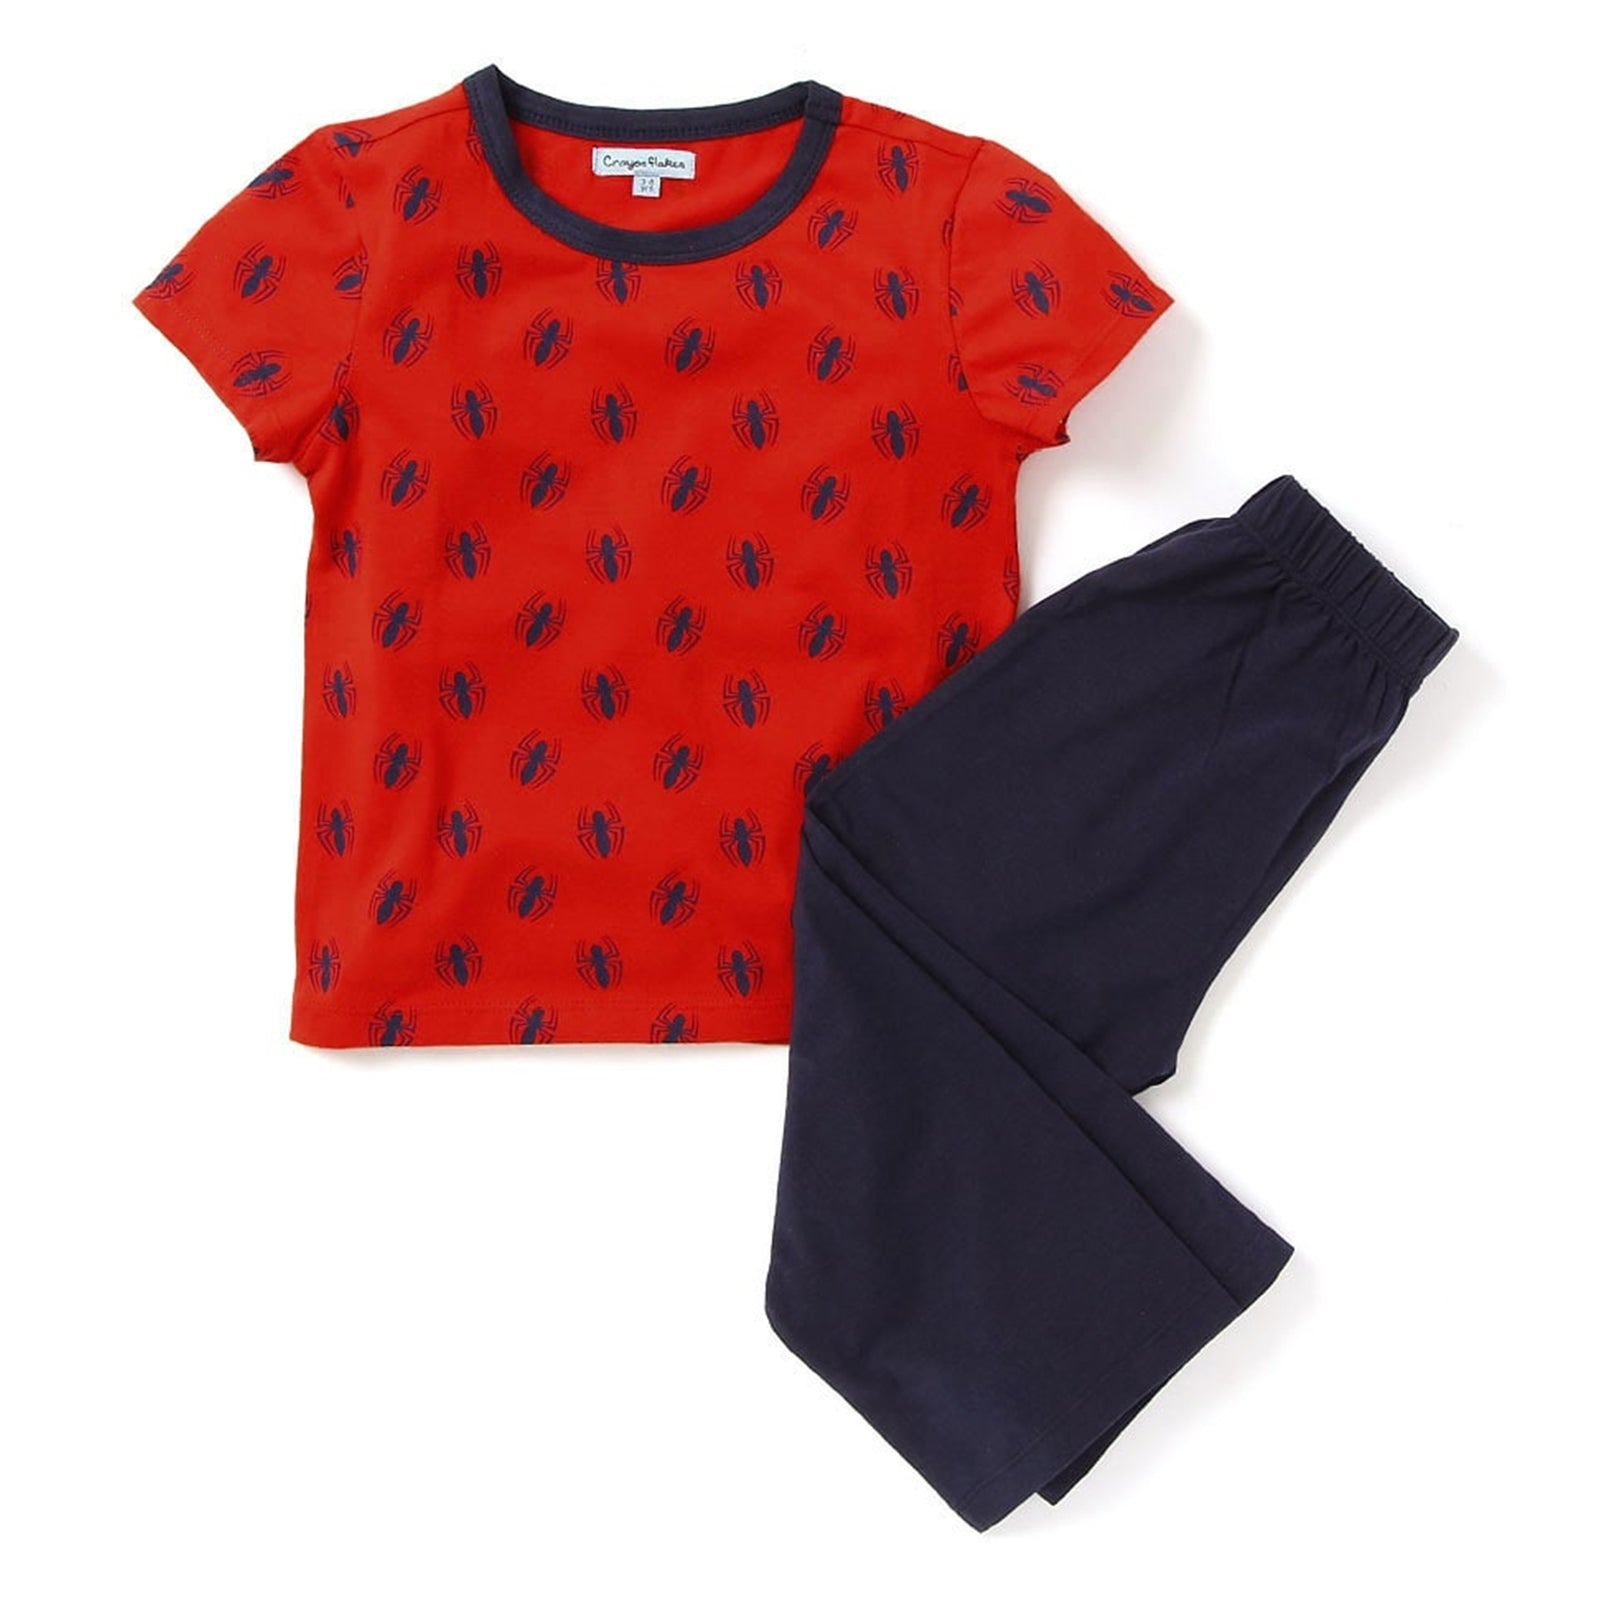 2c89196c8 Kids Wear Girls   Boys Cotton Red   Blue Night Suit Sleepsuit Set ...